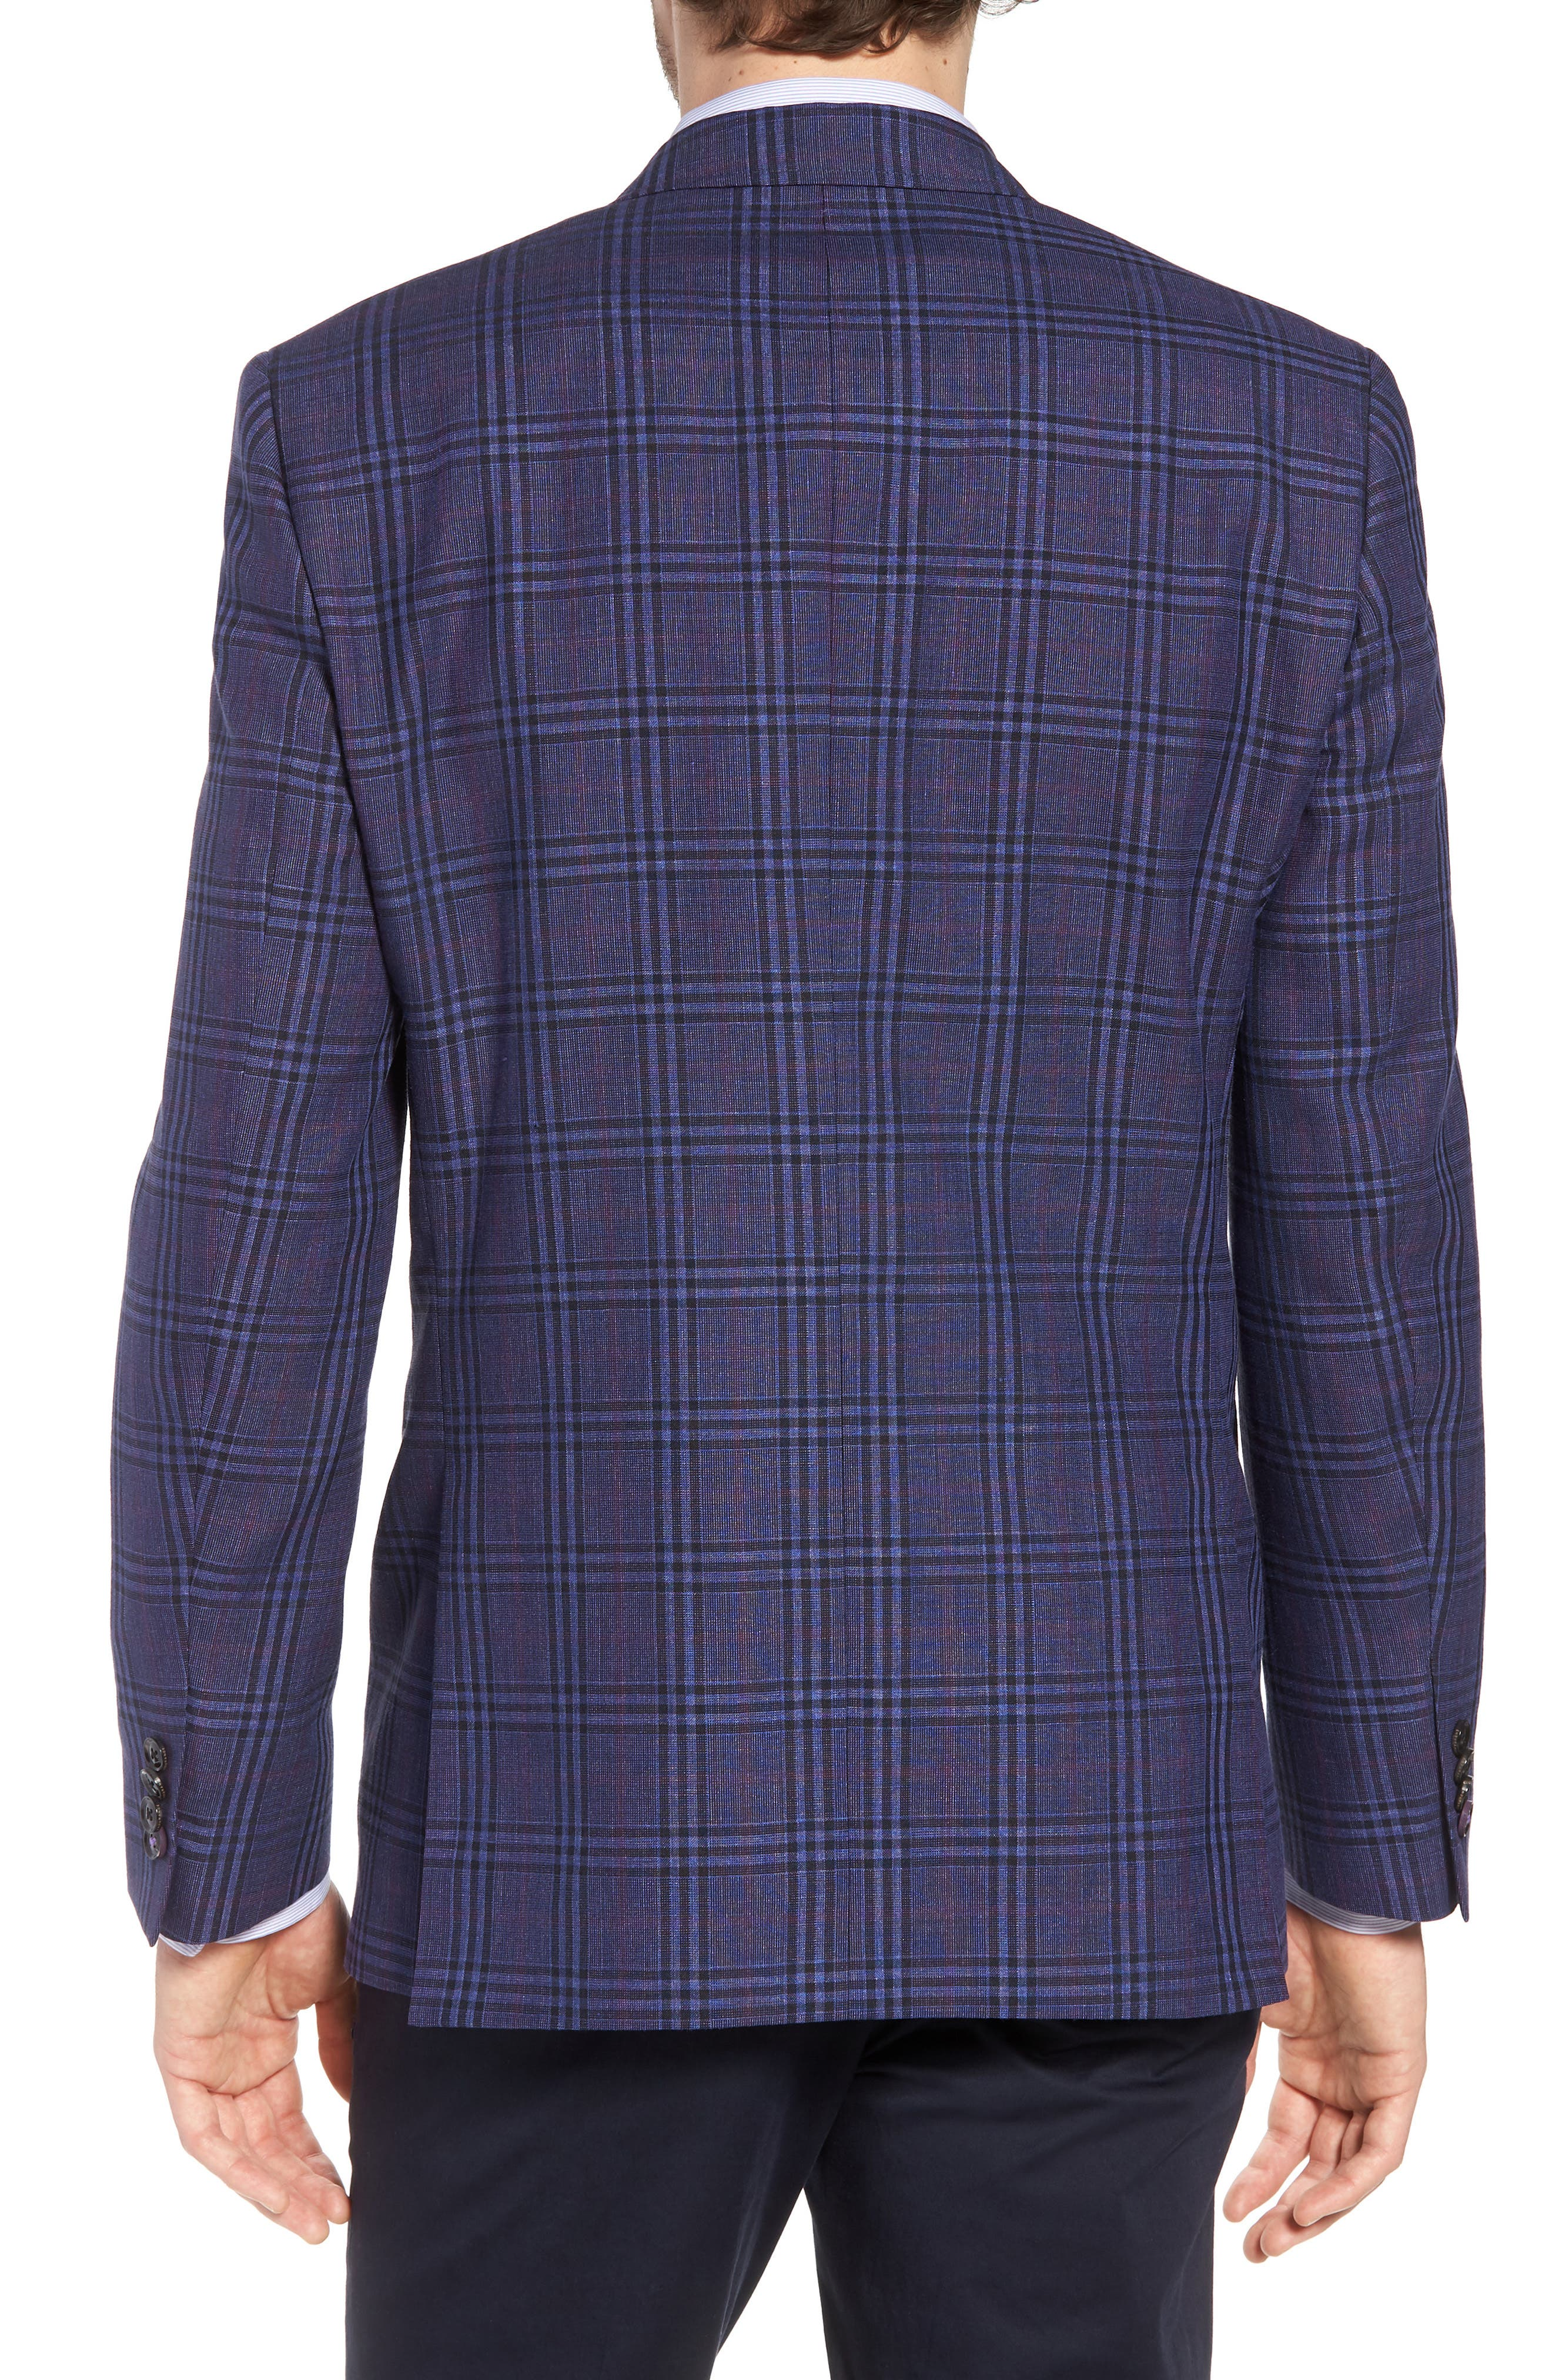 Alternate Image 2  - Ted Baker London Jay Trim Fit Plaid Wool & Linen Sport Coat